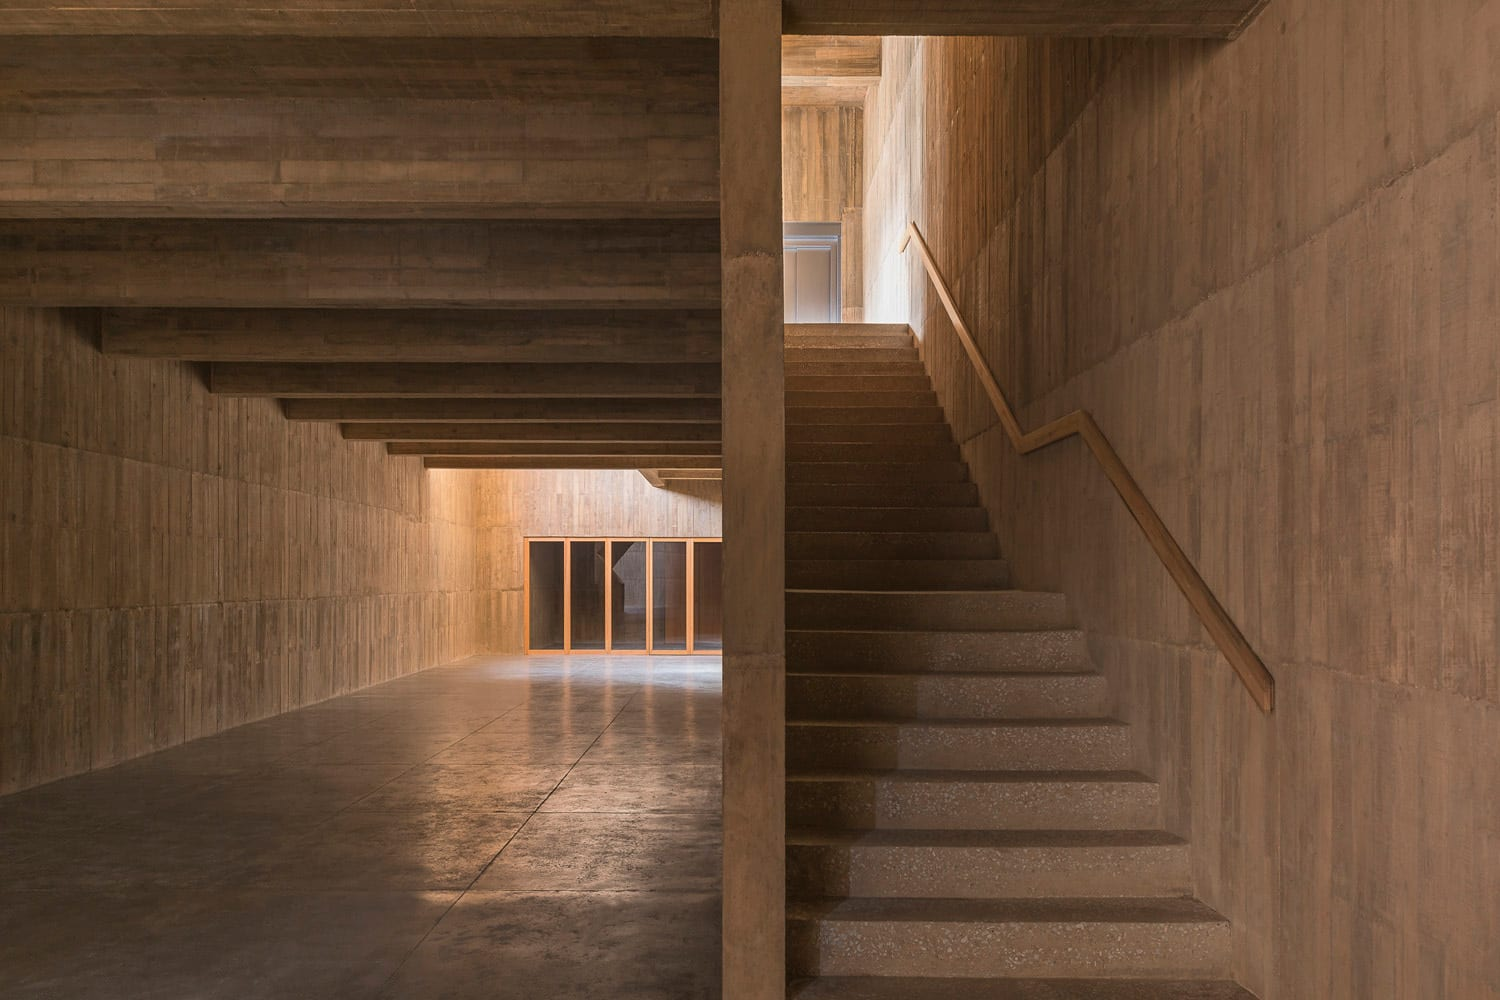 PRODUCTORA's Monolithic Cultural Center in Mexico Built from Pigmented Concrete, Clay, Bricks & Timber | Yellowtrace